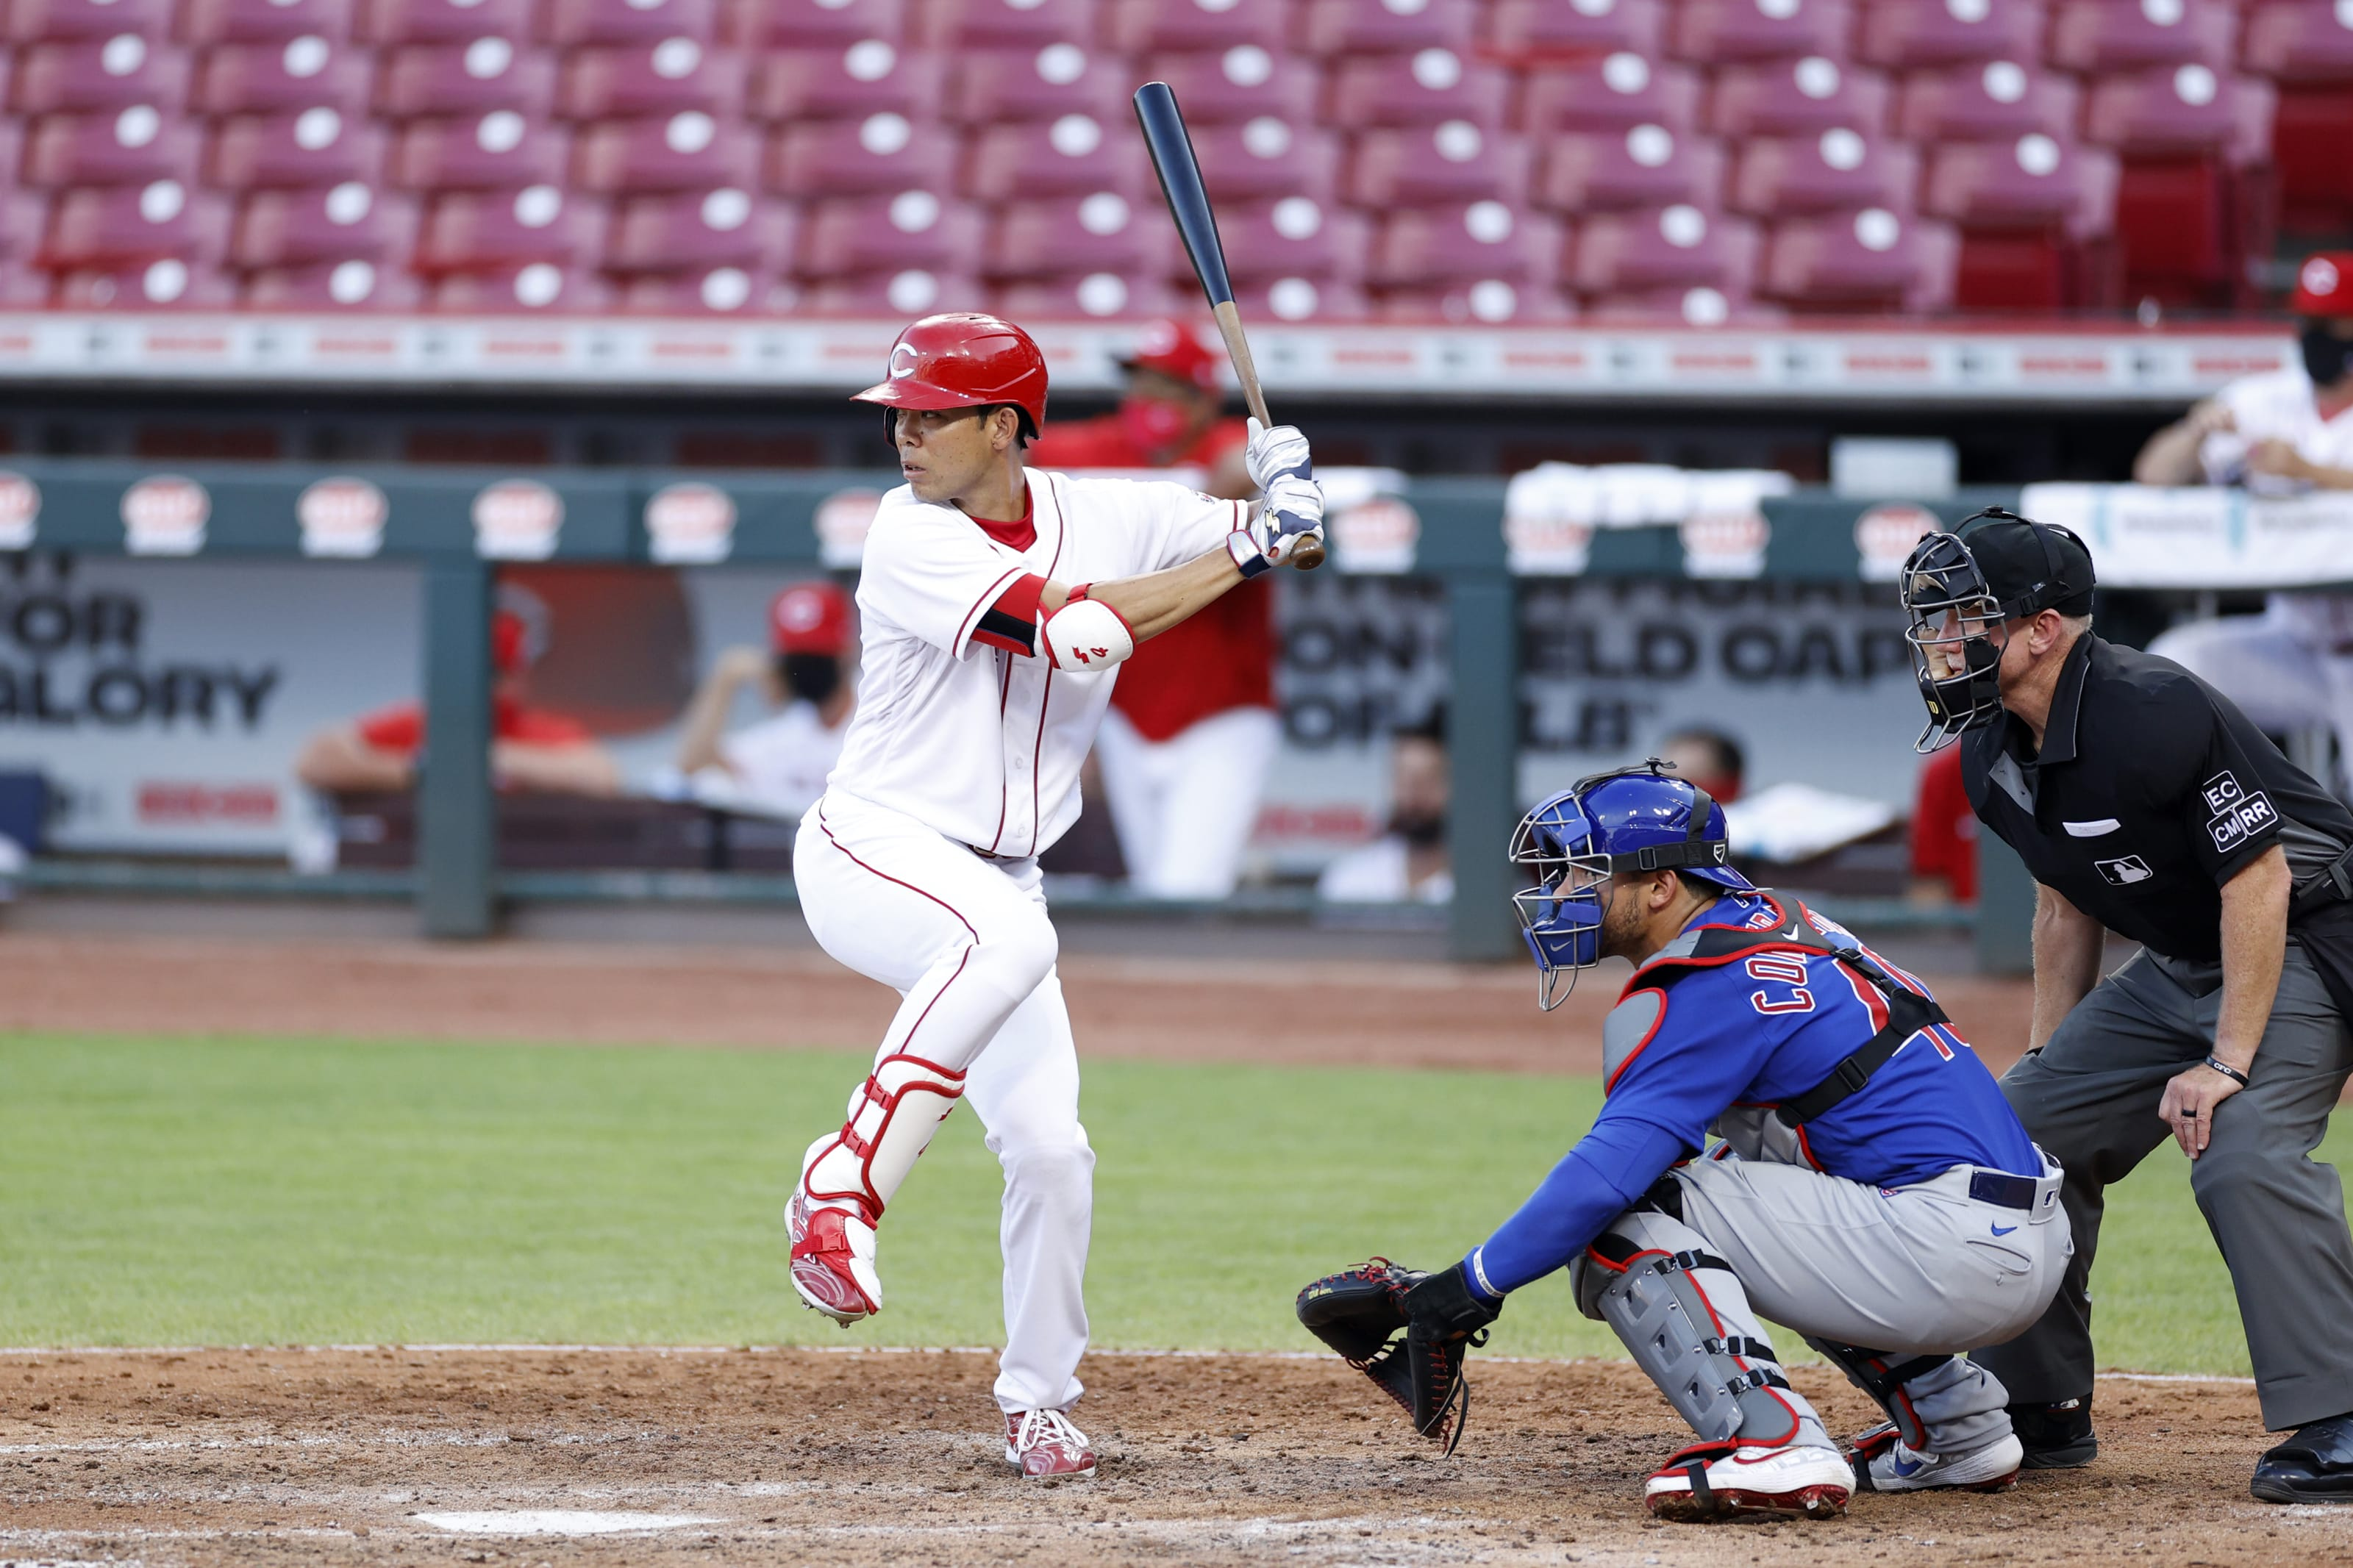 Shogo Akiyama #4 of the Cincinnati Reds bats in the fifth inning of the game against the Chicago Cubs.